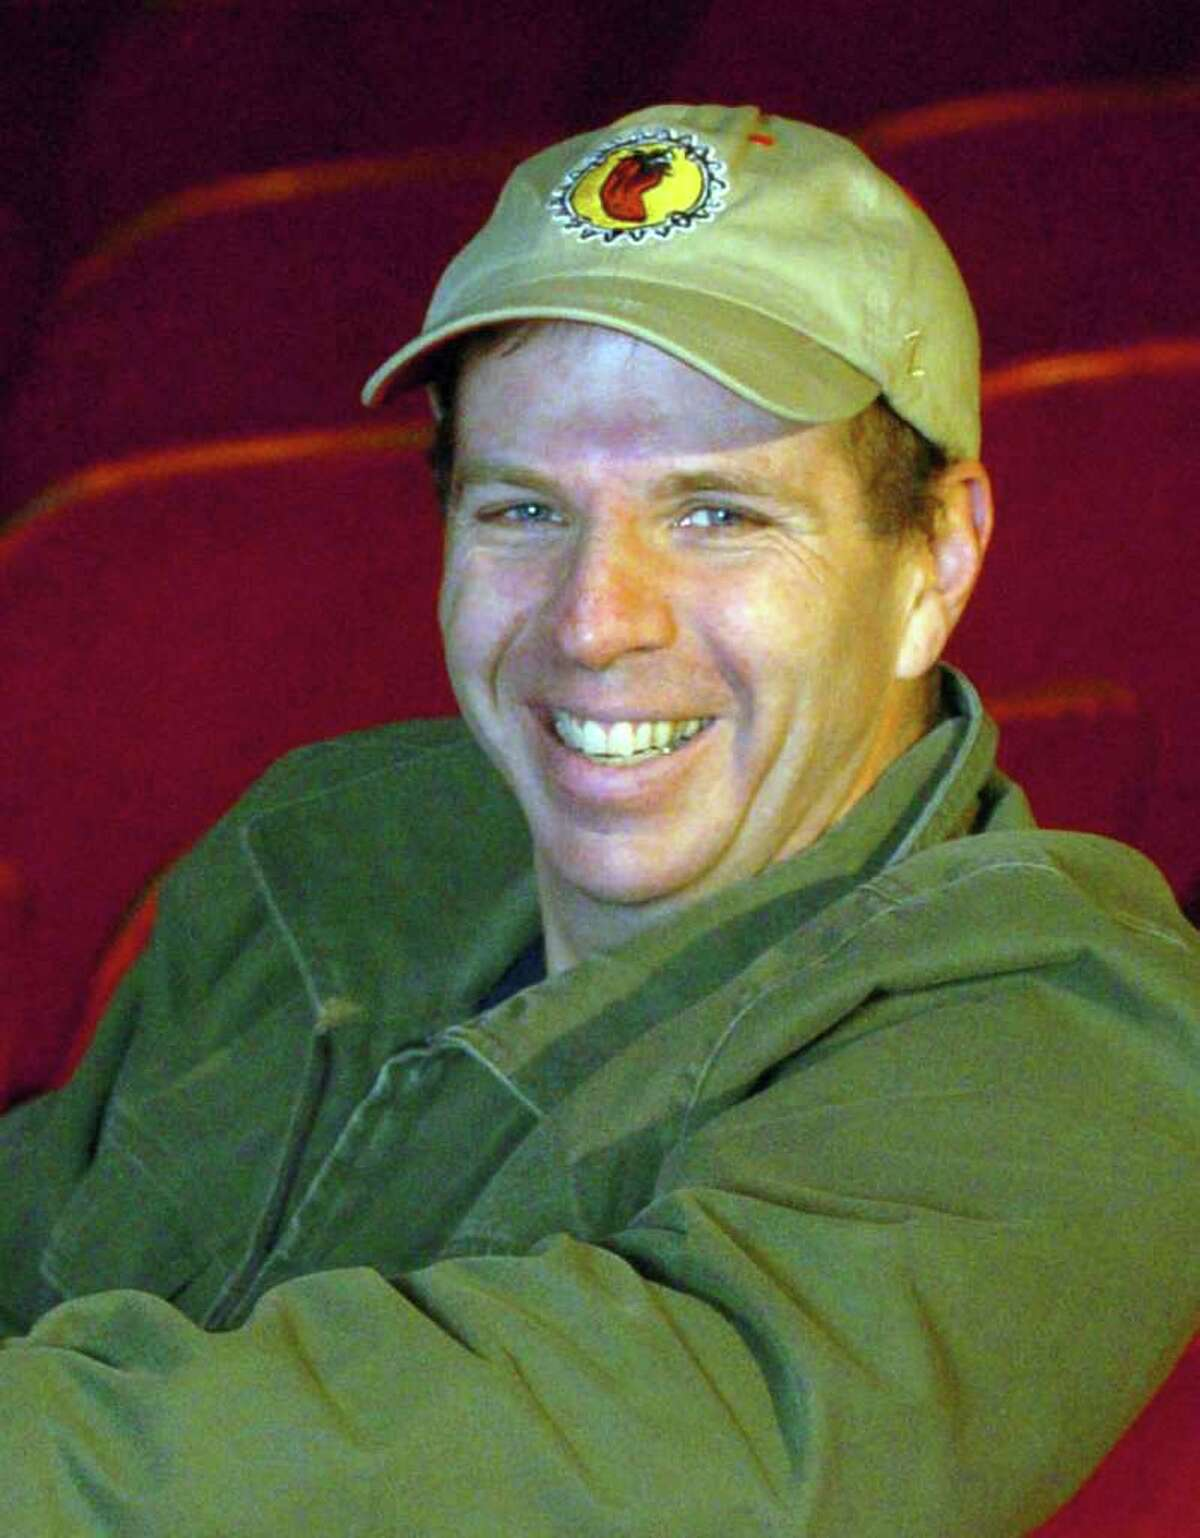 Tom Carruthers, of the Connecticut Film Festival, at The Palace Theater in Danbury.